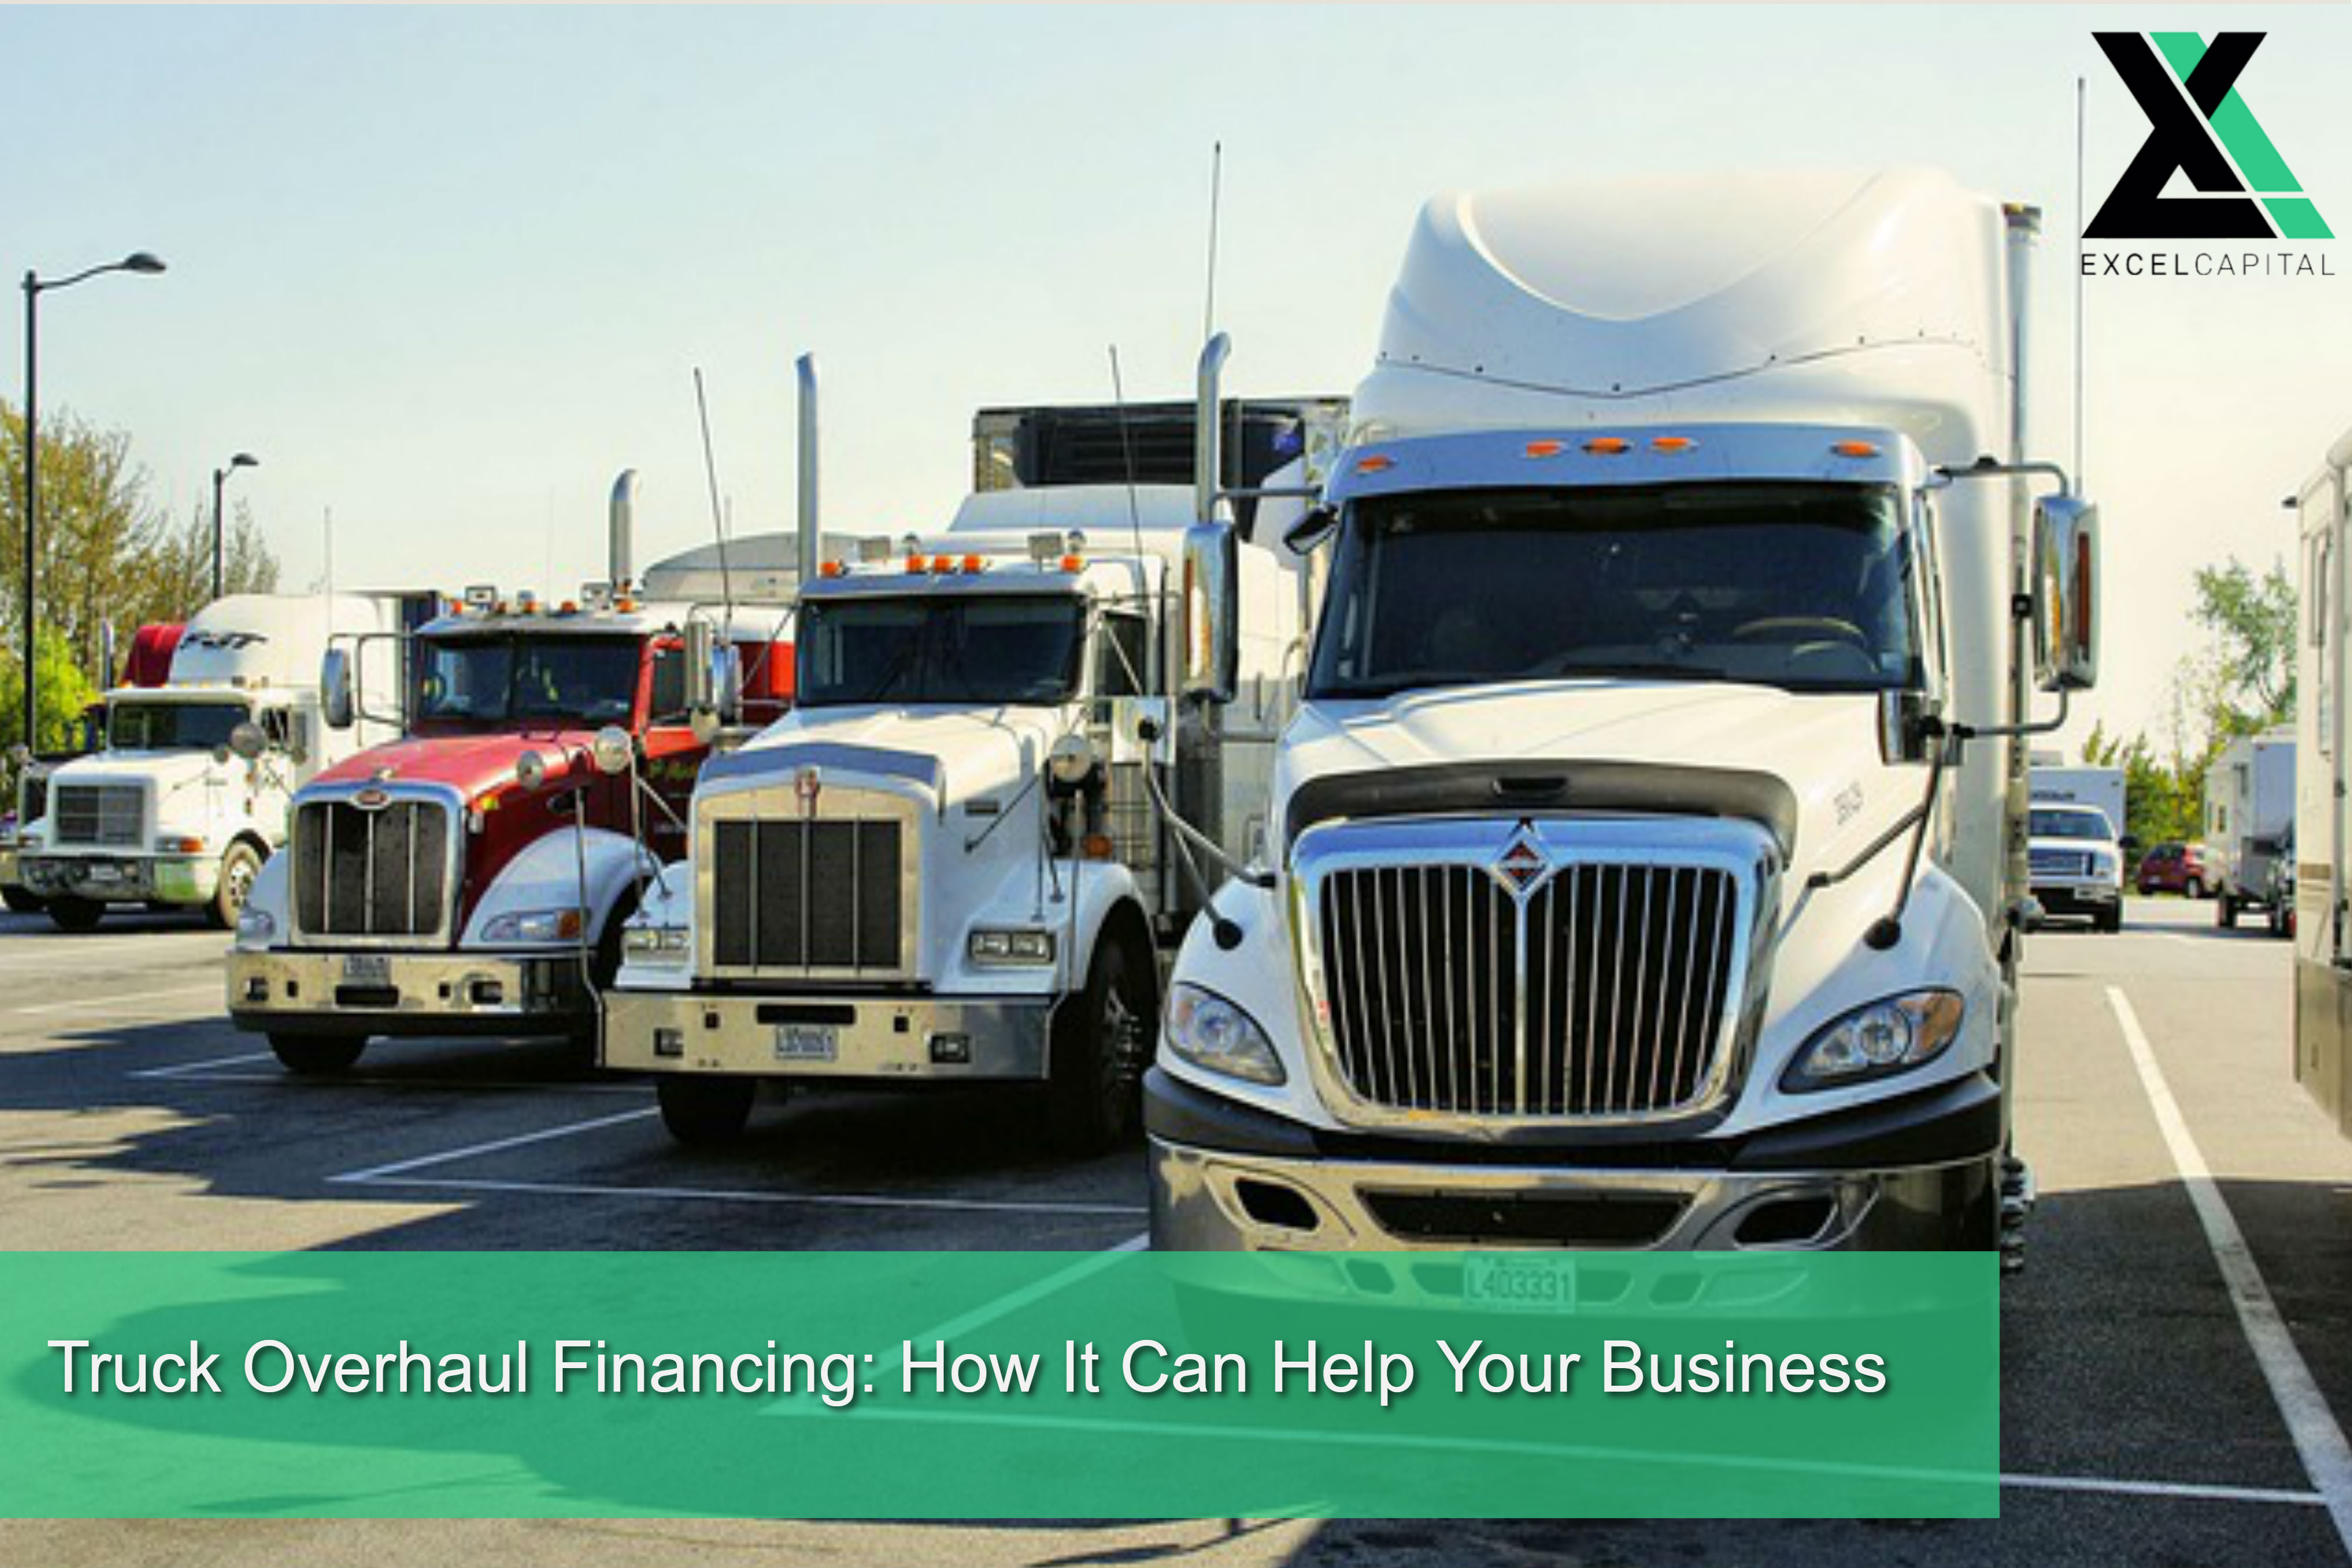 Truck Overhaul Financing: How It Can Help Your Business | Excel Capital Management